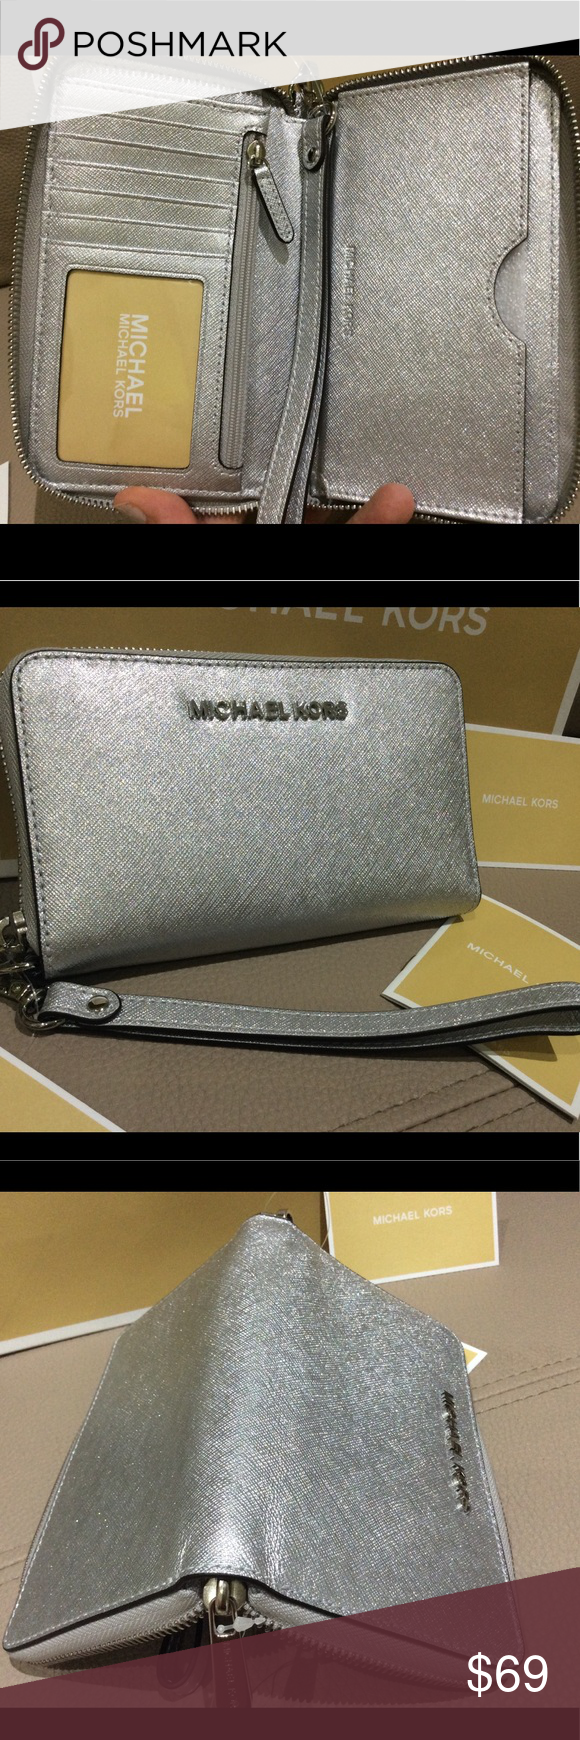 1805f1f9bb306c Michael kors wallet silver phone case saffiano Mk New with tag and care  card Michael Kors Bags Wallets